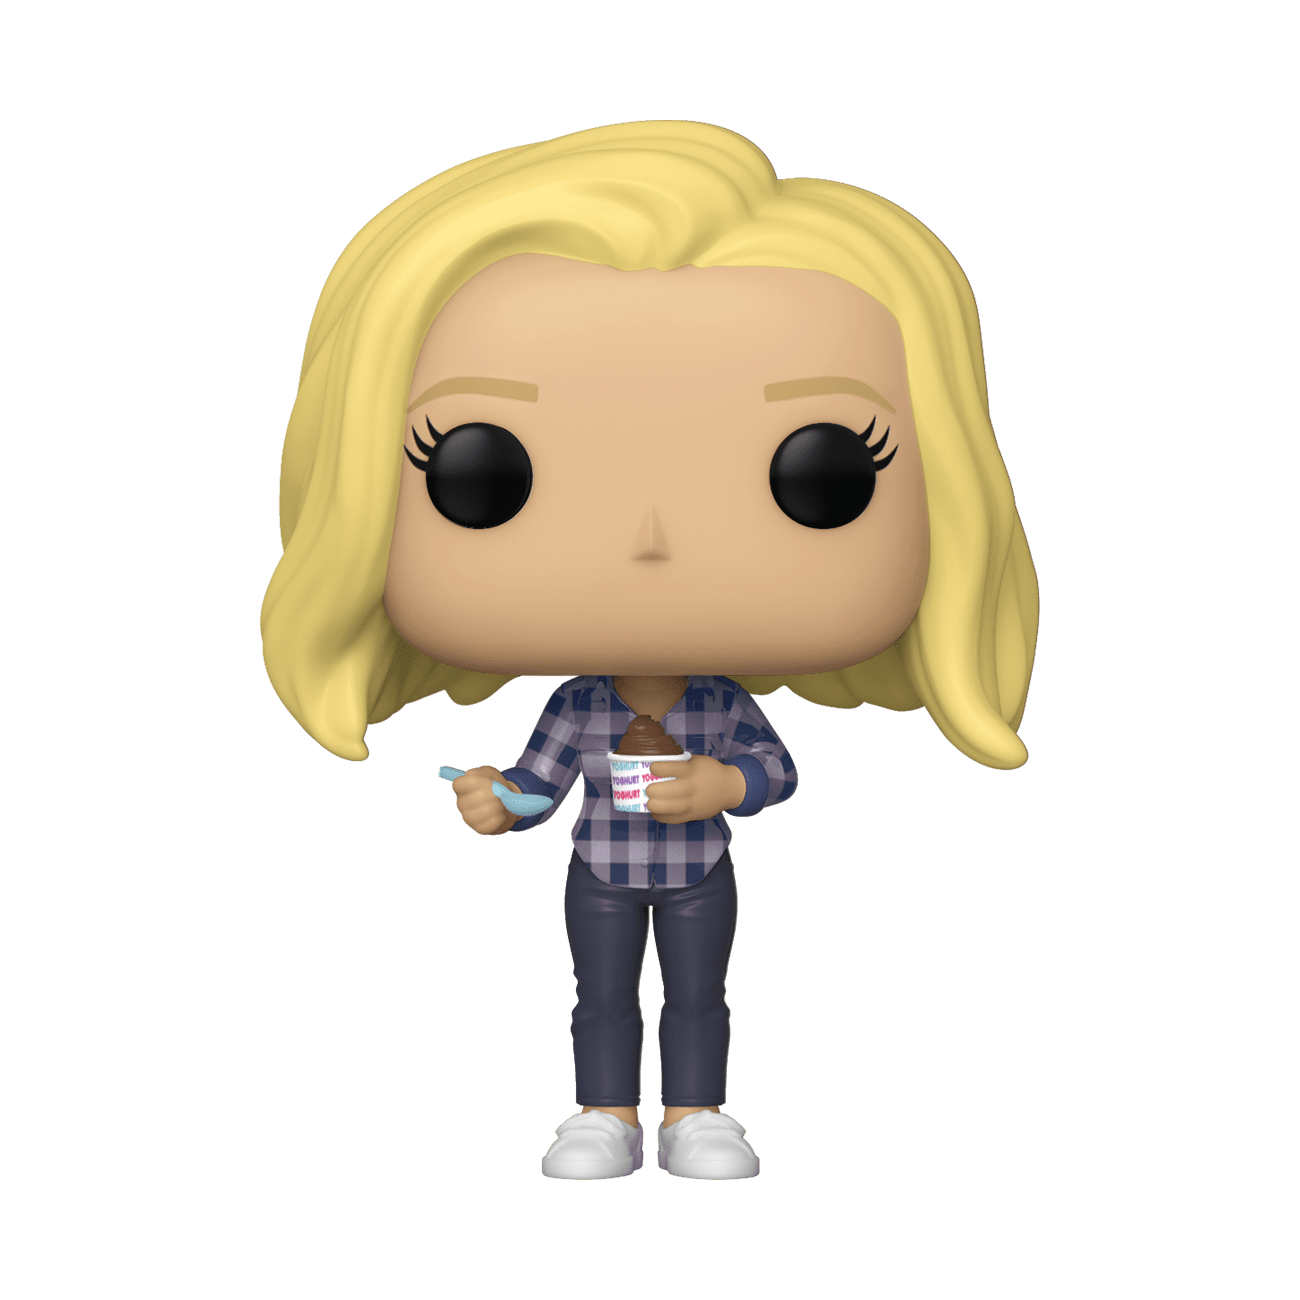 POP! The Good Place: Eleanor Shellstrop